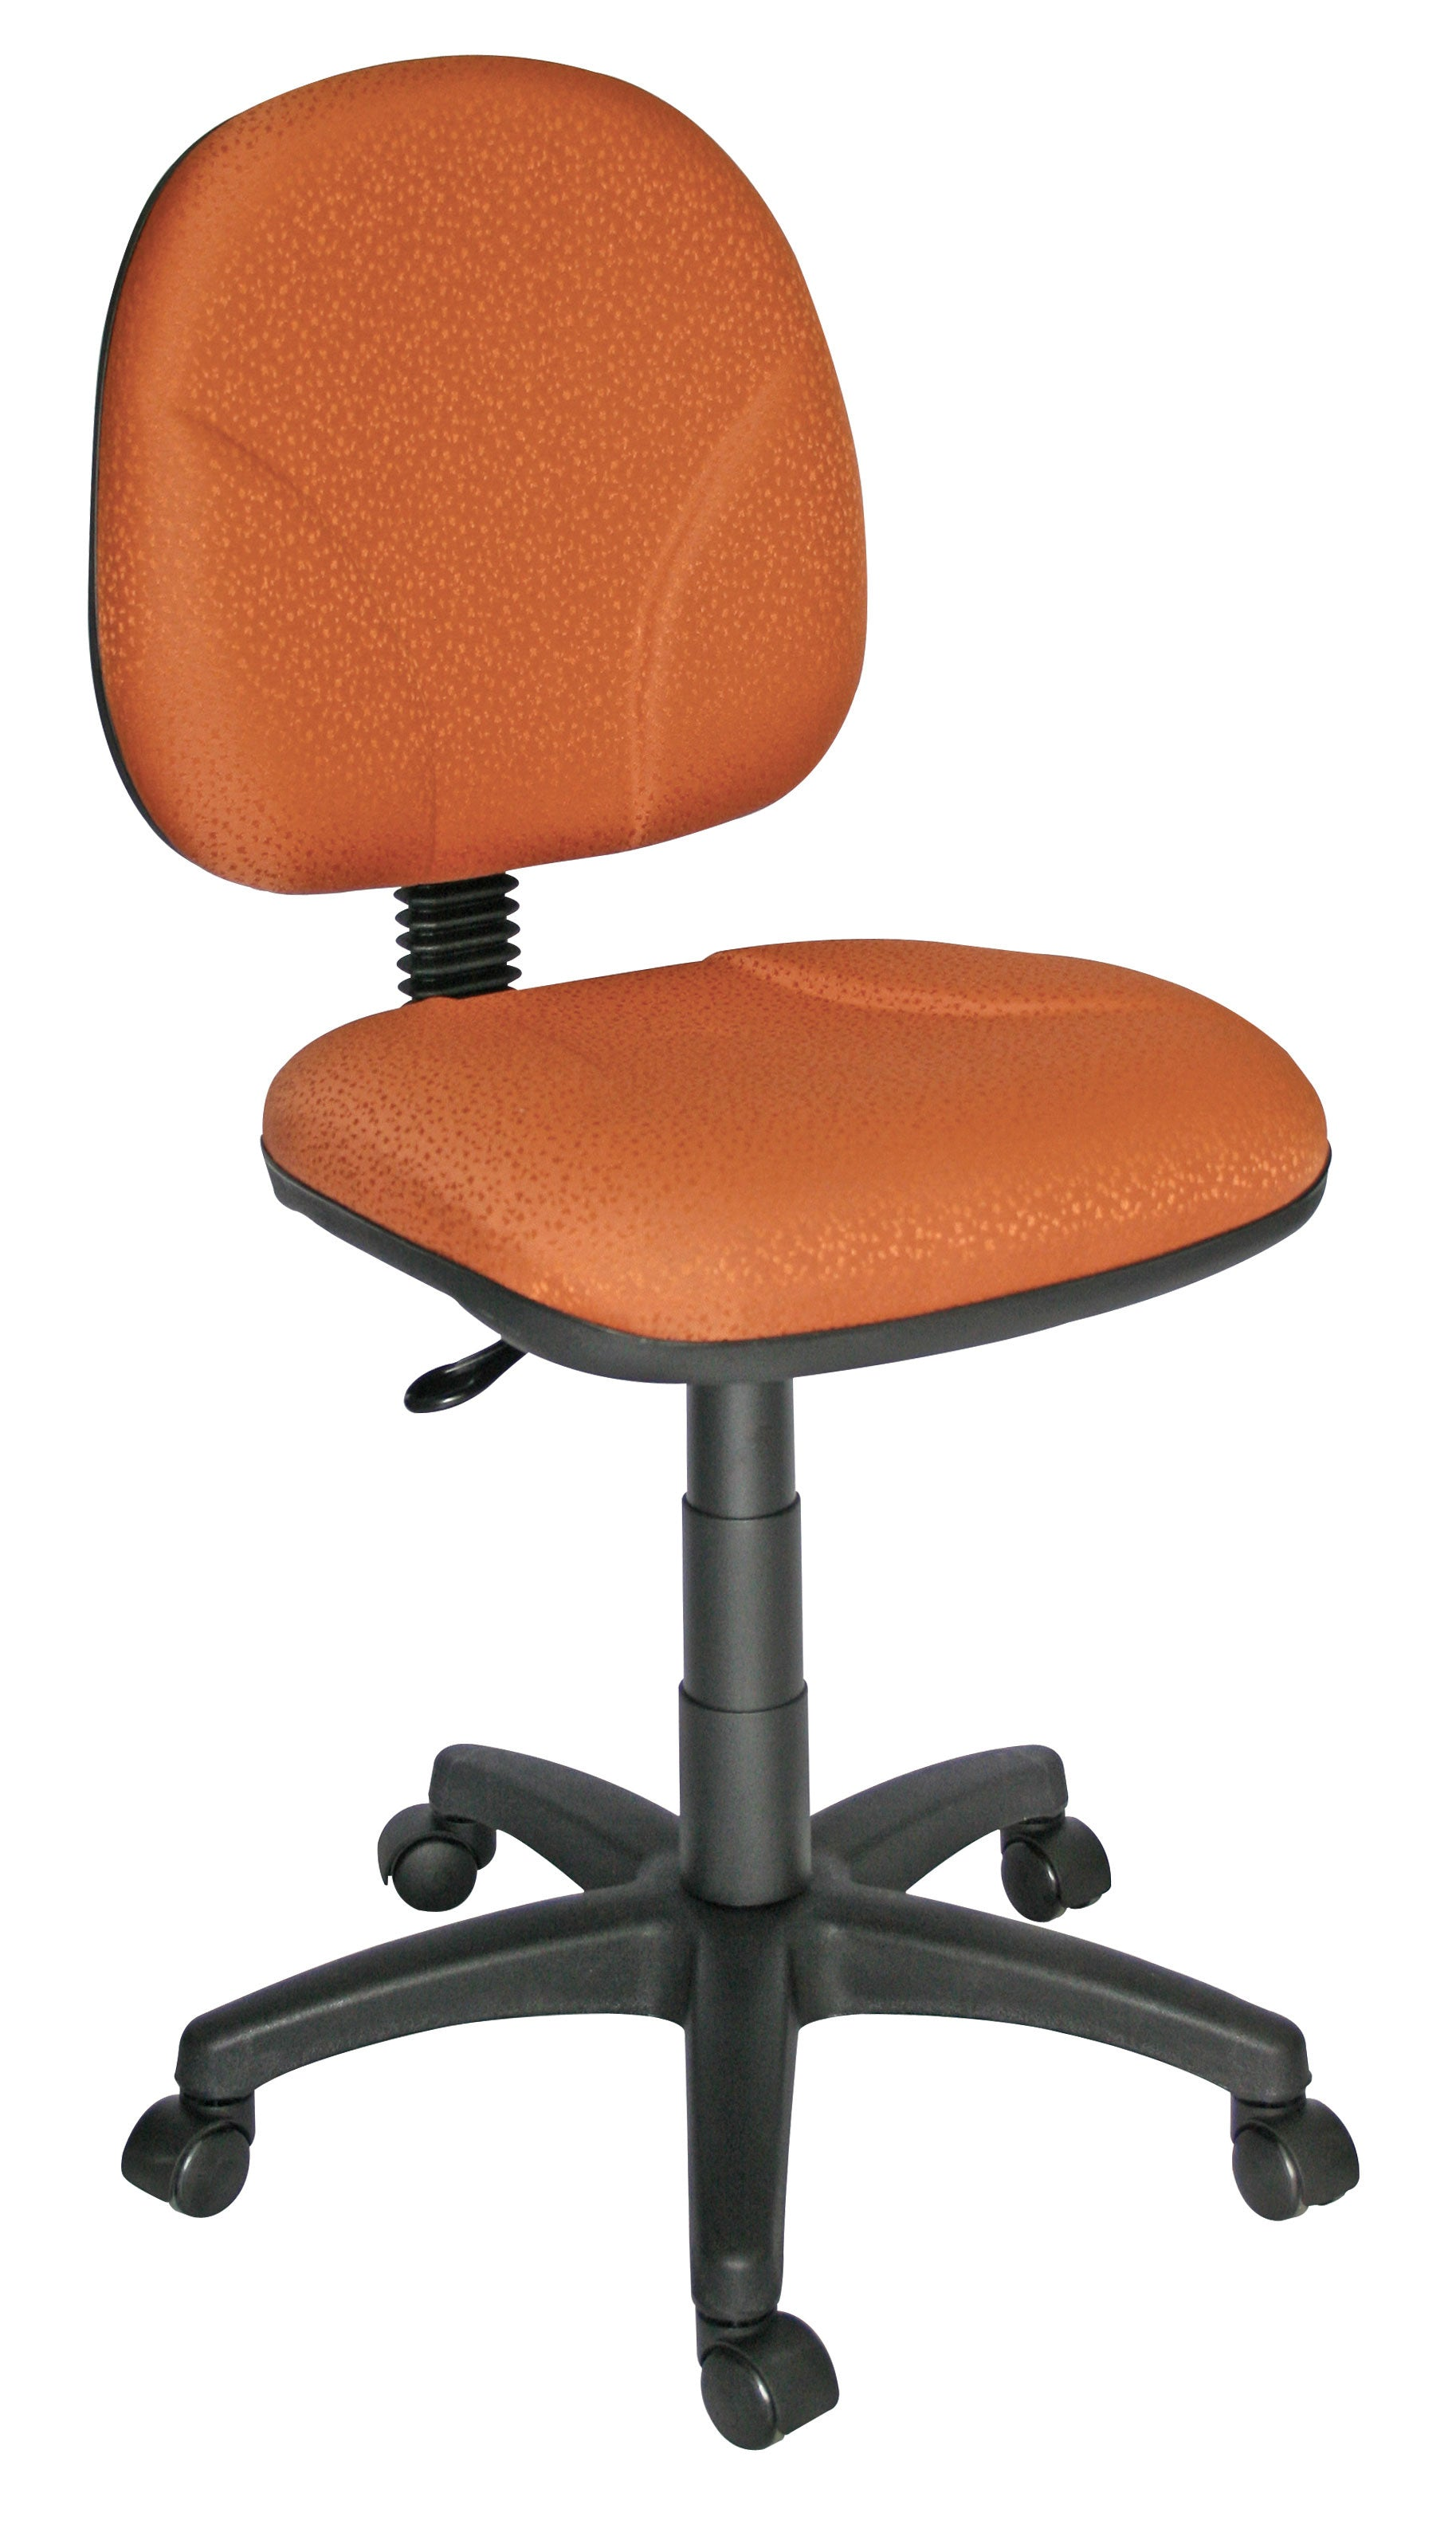 SILLA OPERATIVA VERSA SEATING - offimobile